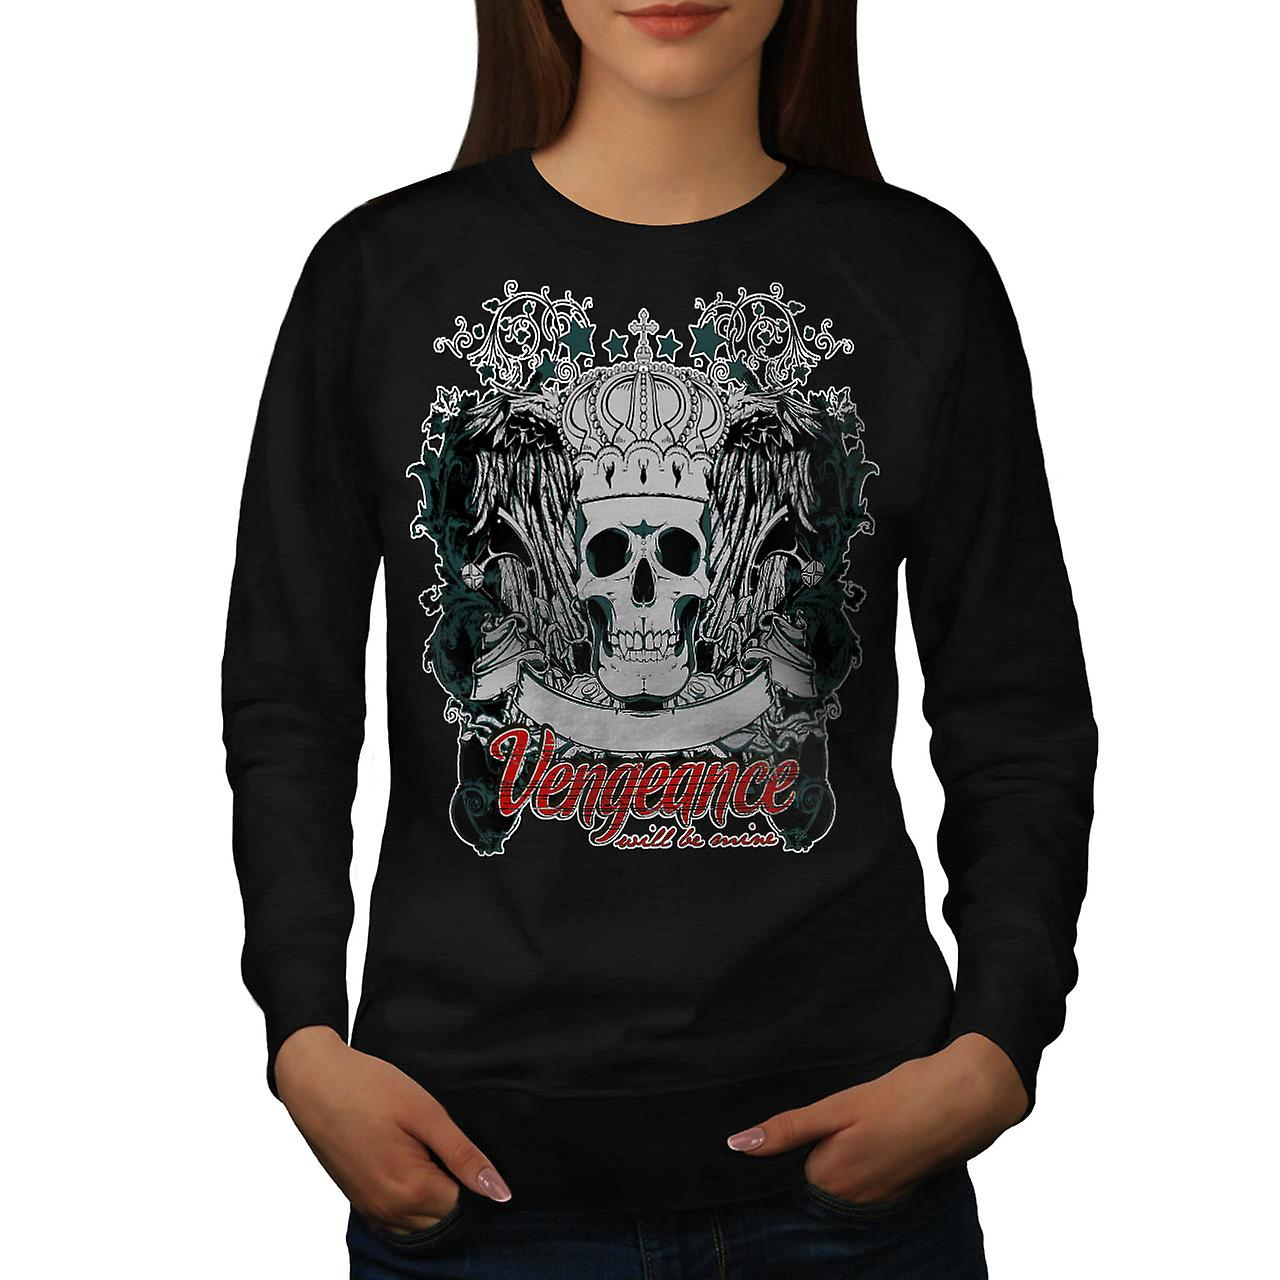 Vengeance Revenge Eye Thrones Women Black Sweatshirt | Wellcoda